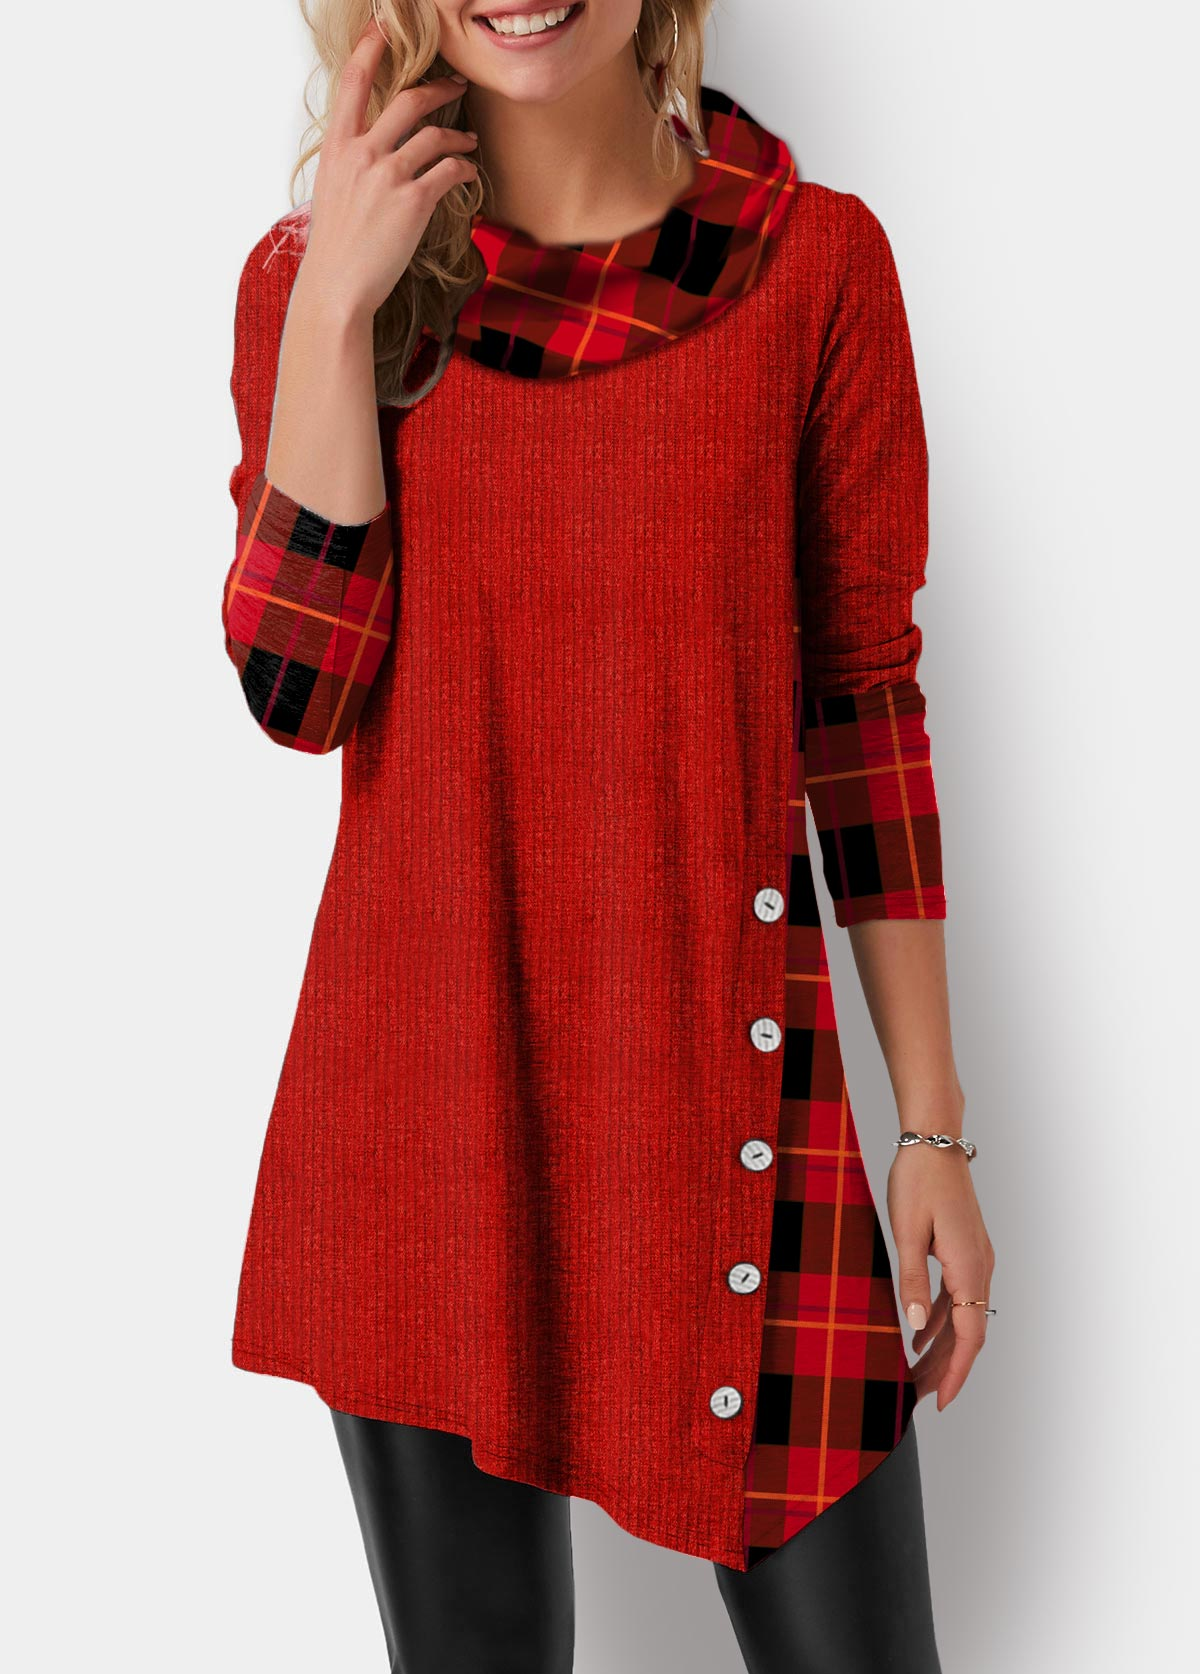 Asymmetric Hem Plaid Print Button Detail Tunic Top